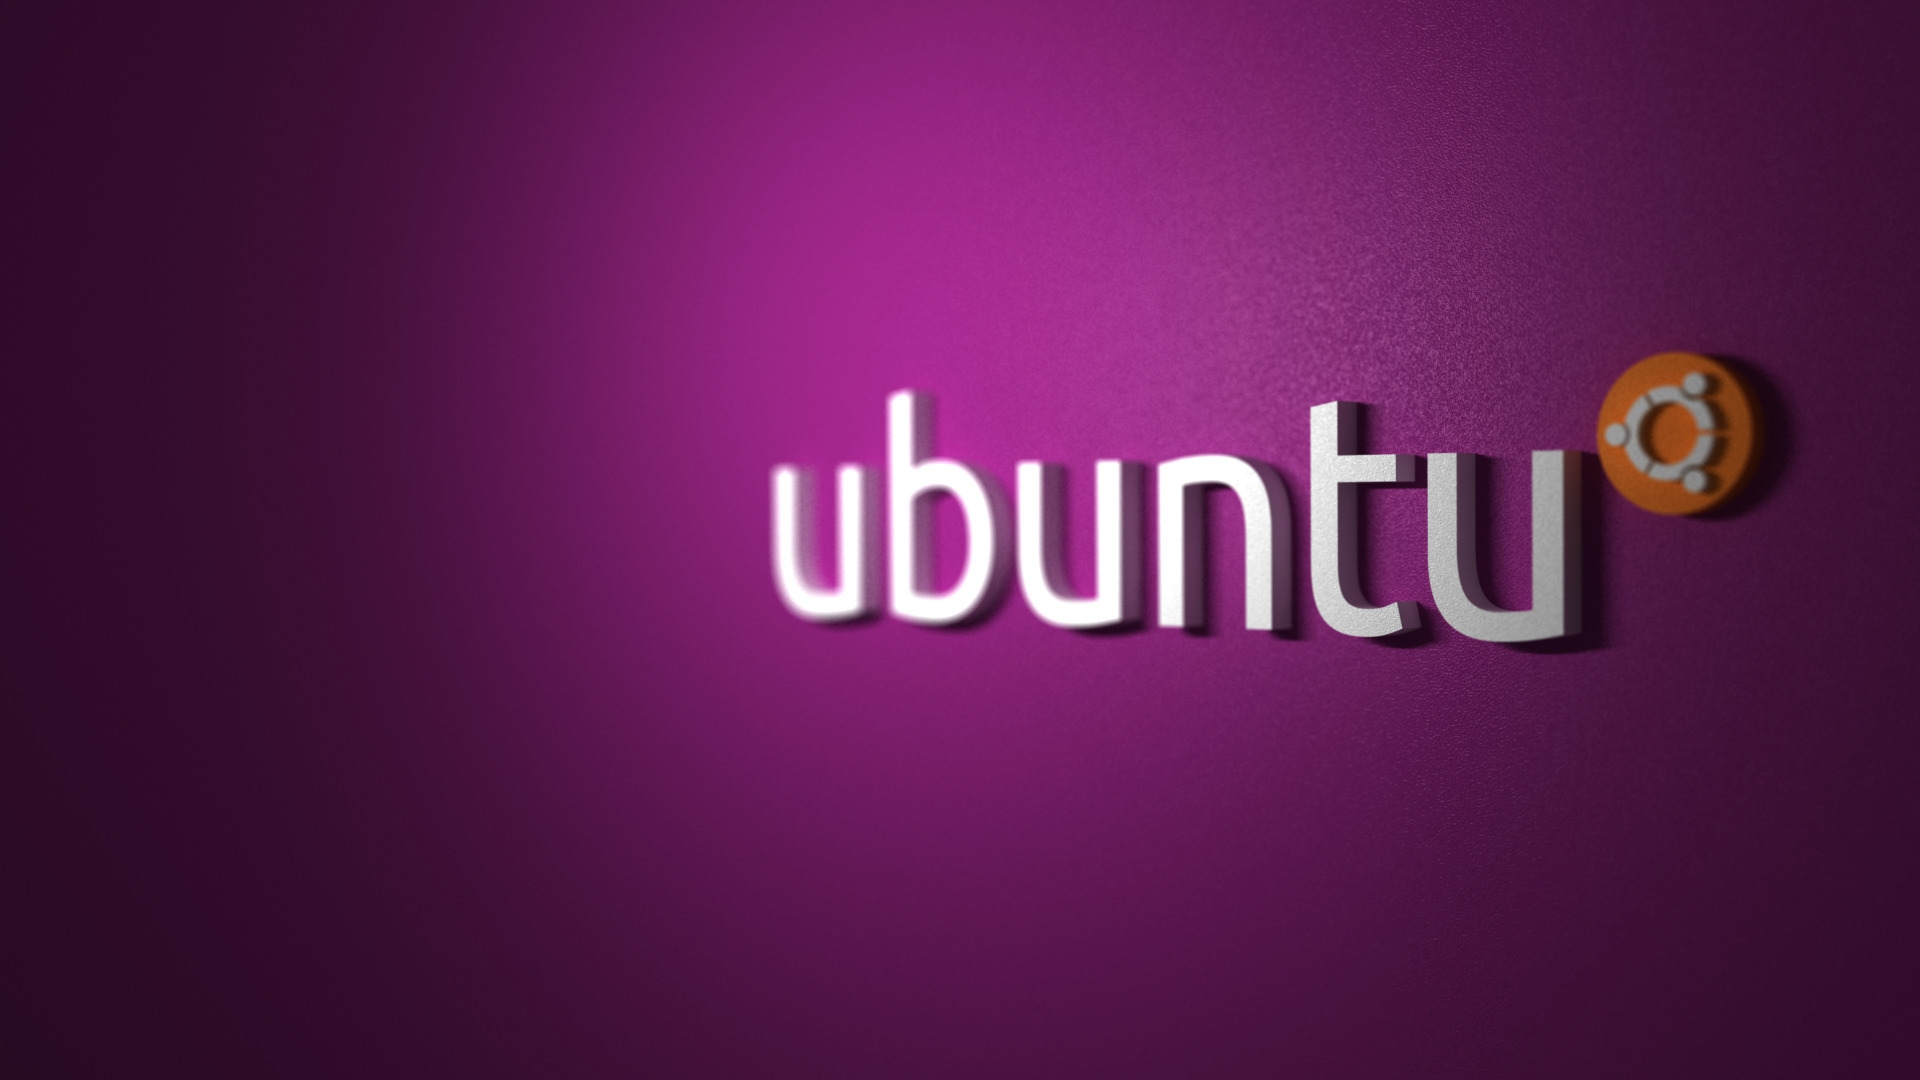 Download Wallpaper 1920x1080 ubuntu, purple, orange, white ...